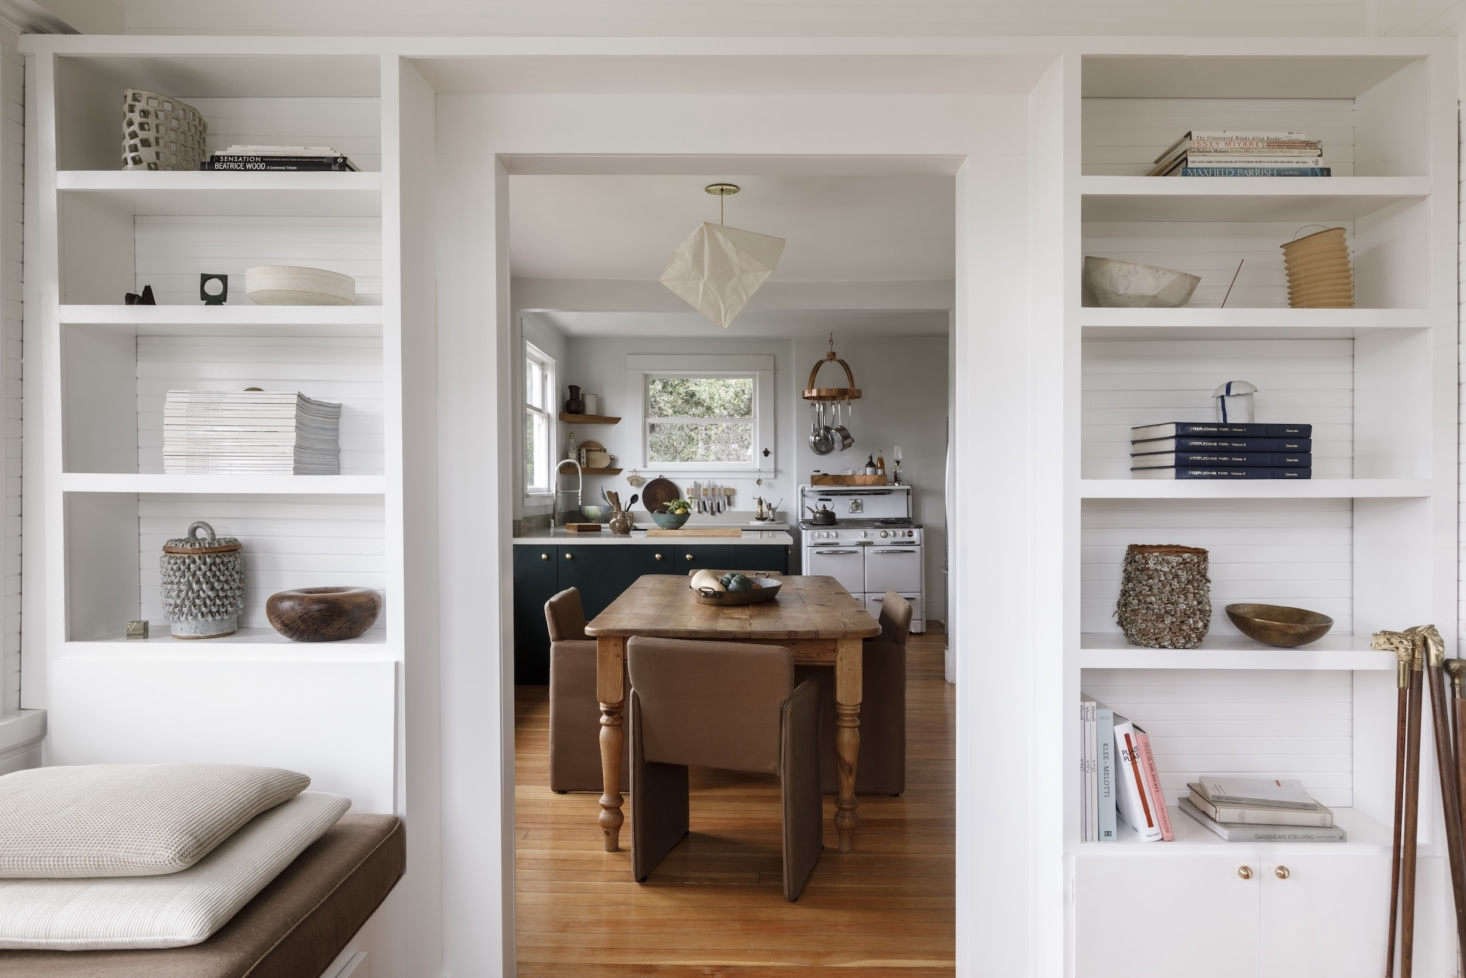 The view from the sunroom into the dining/kitchen space. The built-in shelves display works by some of her favorite ceramicists, includingDavid Korty,Victoria Morris,Morgan Peck, and Kelly Lamb. The collection of canes is a gift from Kathleen&#8